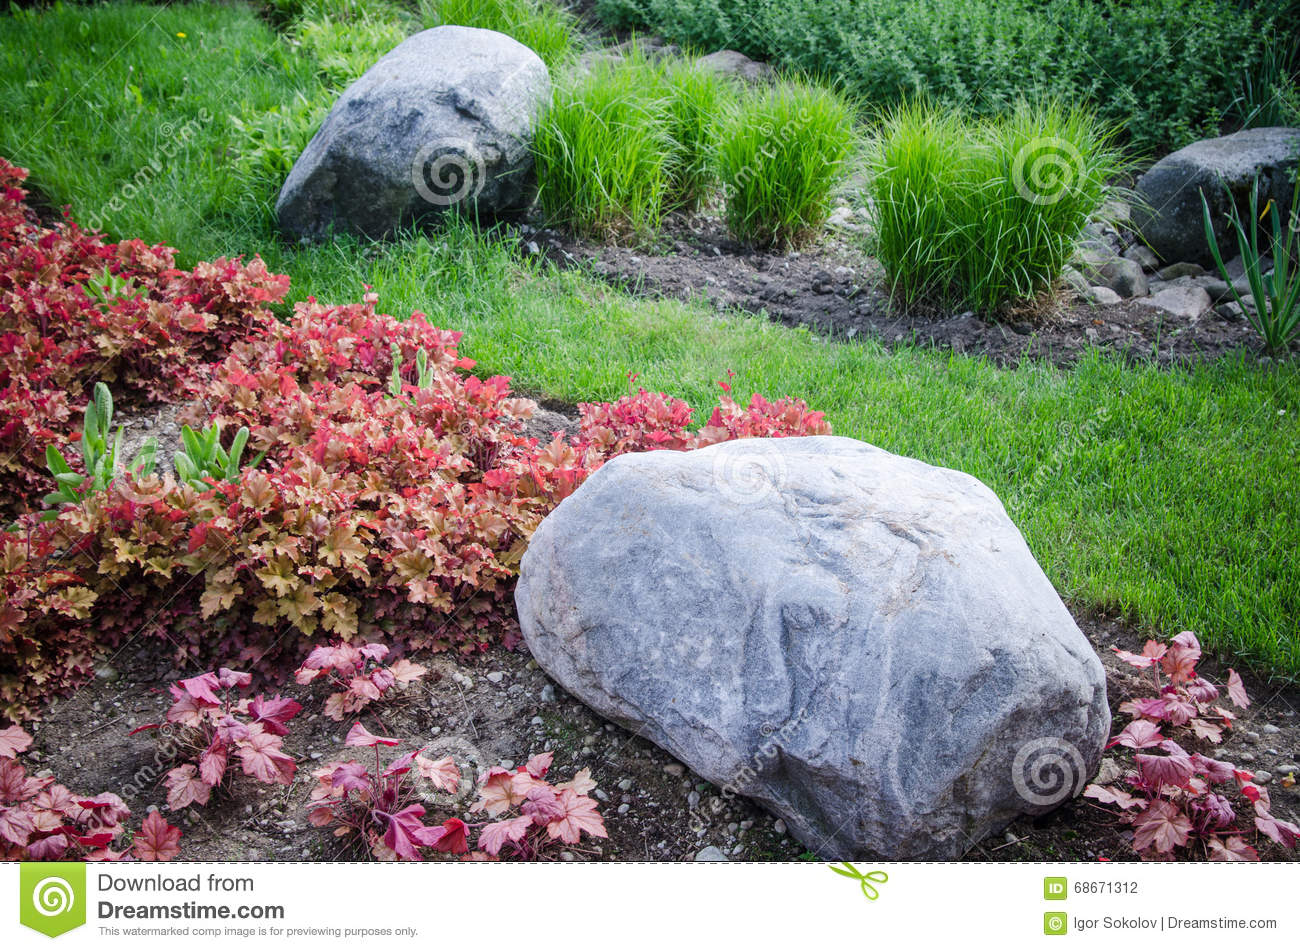 Decorative Stones For Flower Beds : Decorative flower bed in a garden with rocks and plants